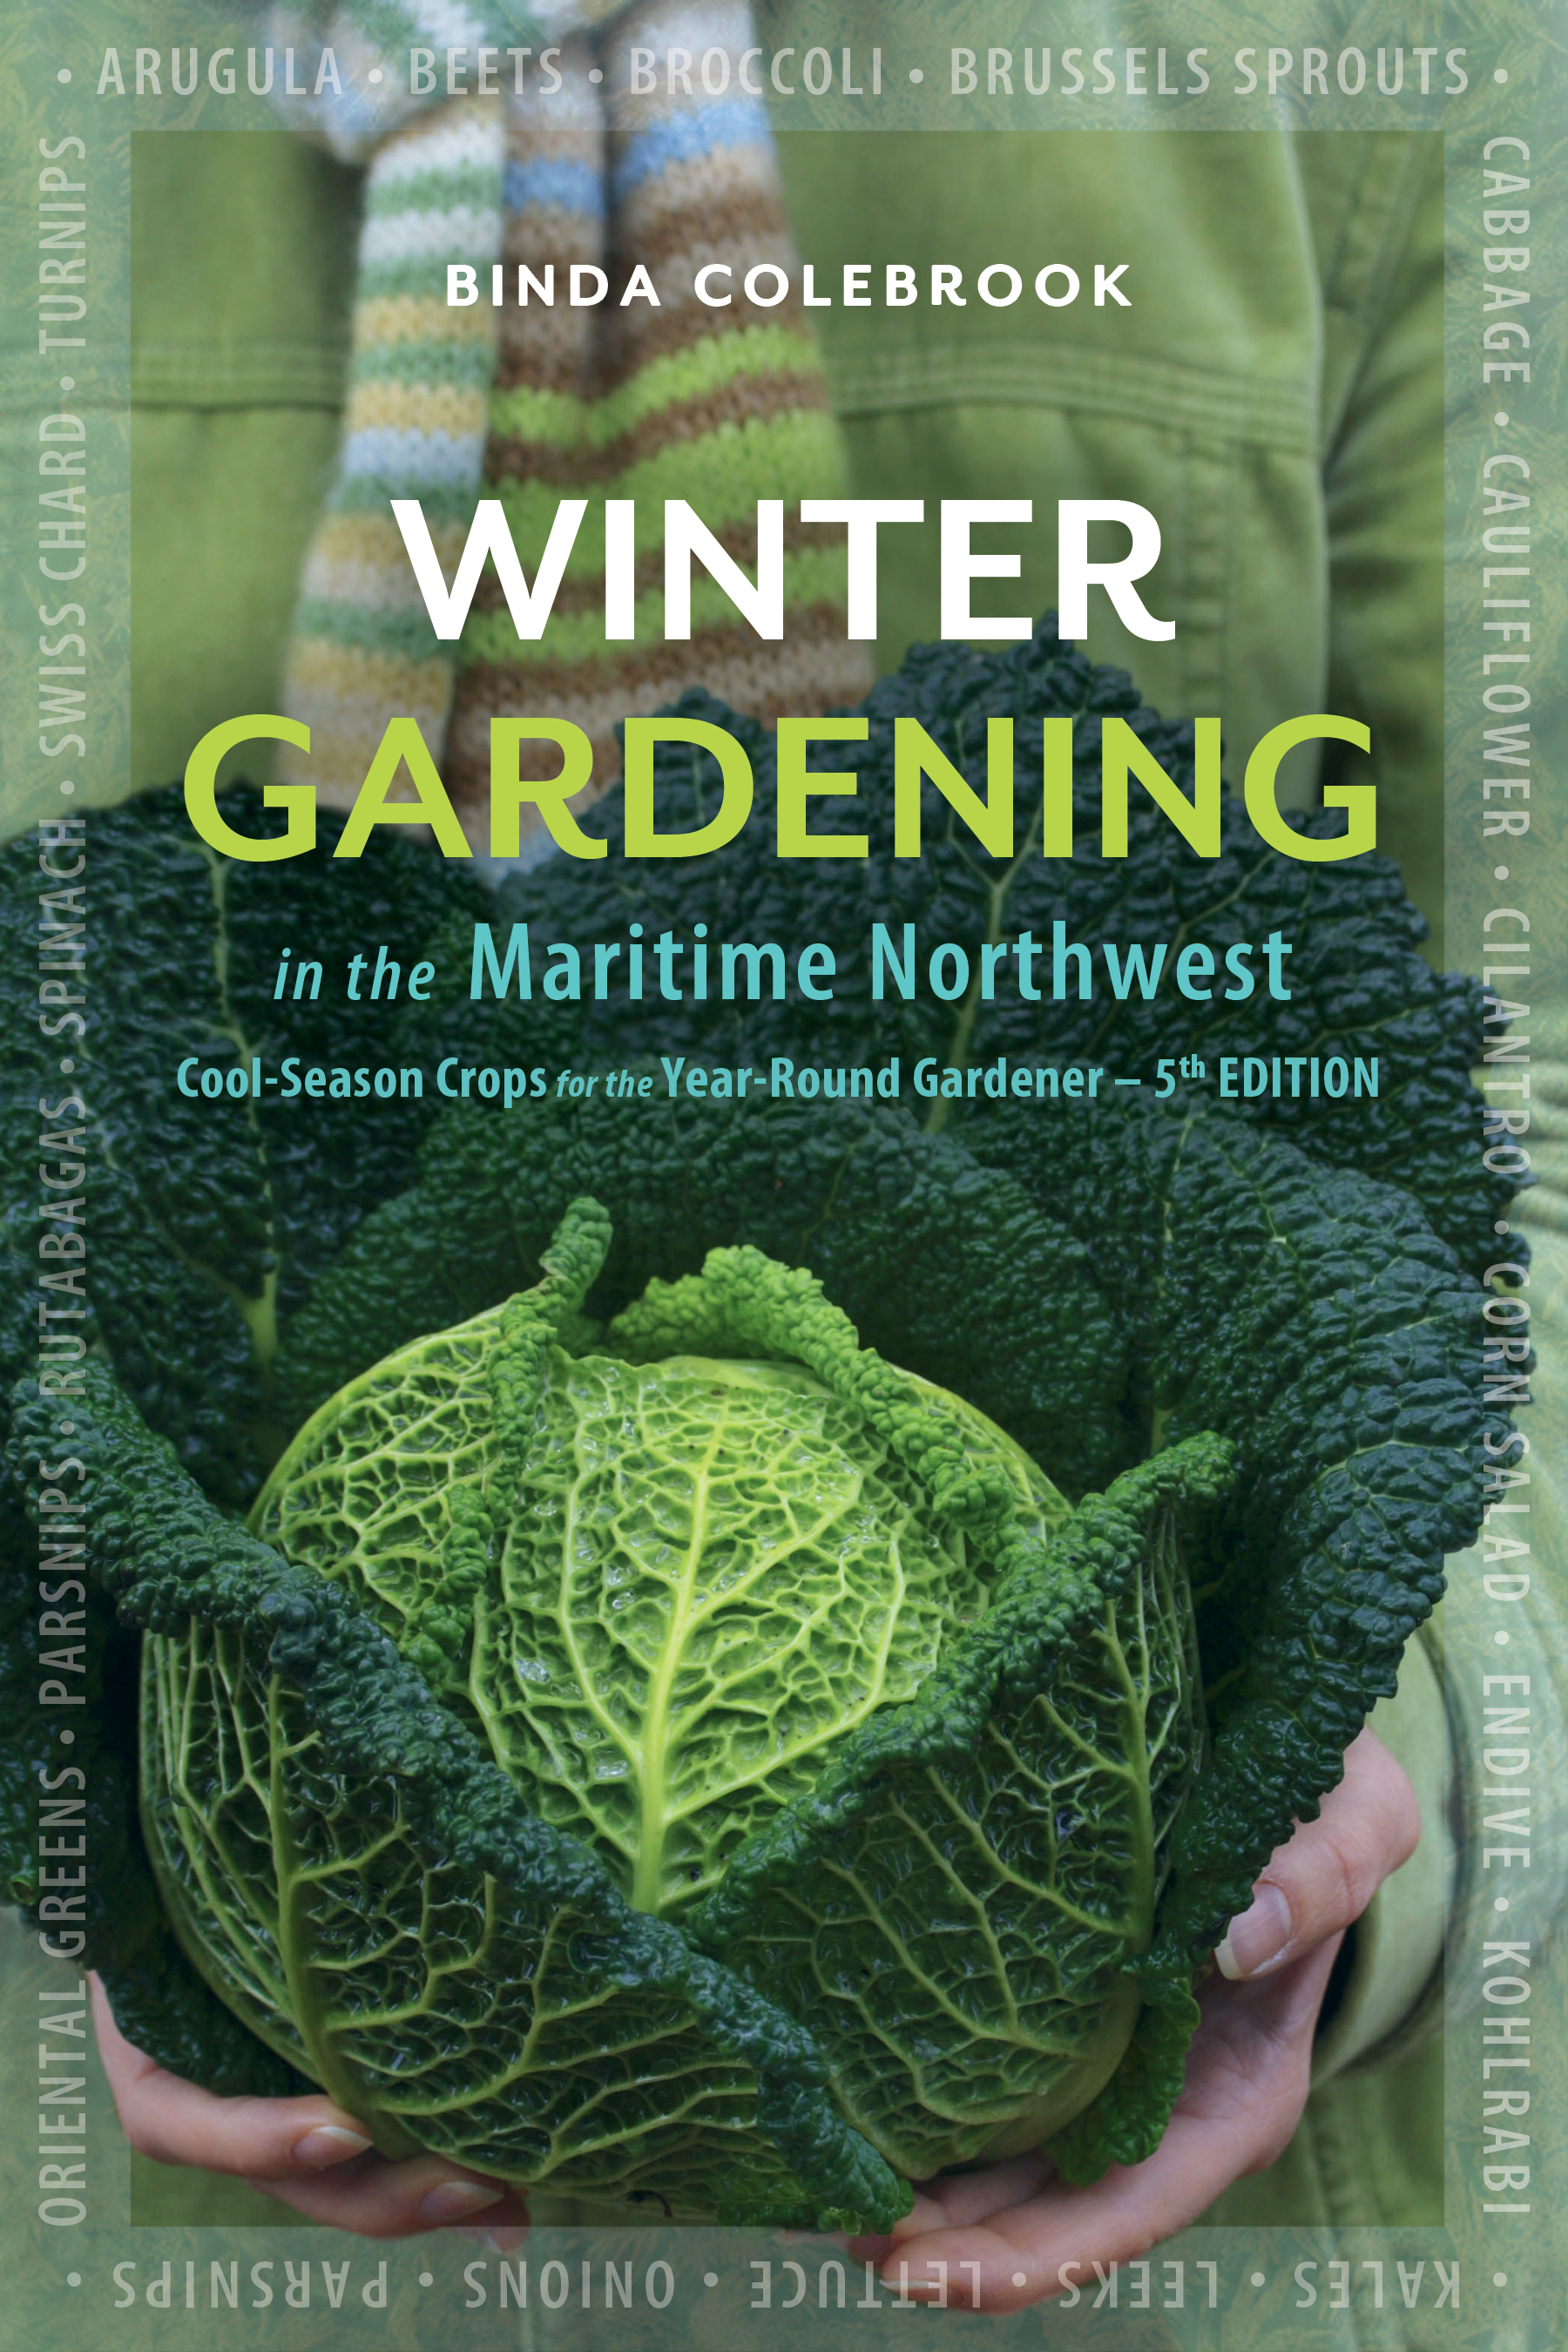 Winter Gardening in the Maritime Northwest: Cool-Season Crops for the Year Round Gardener - Fifth Edition